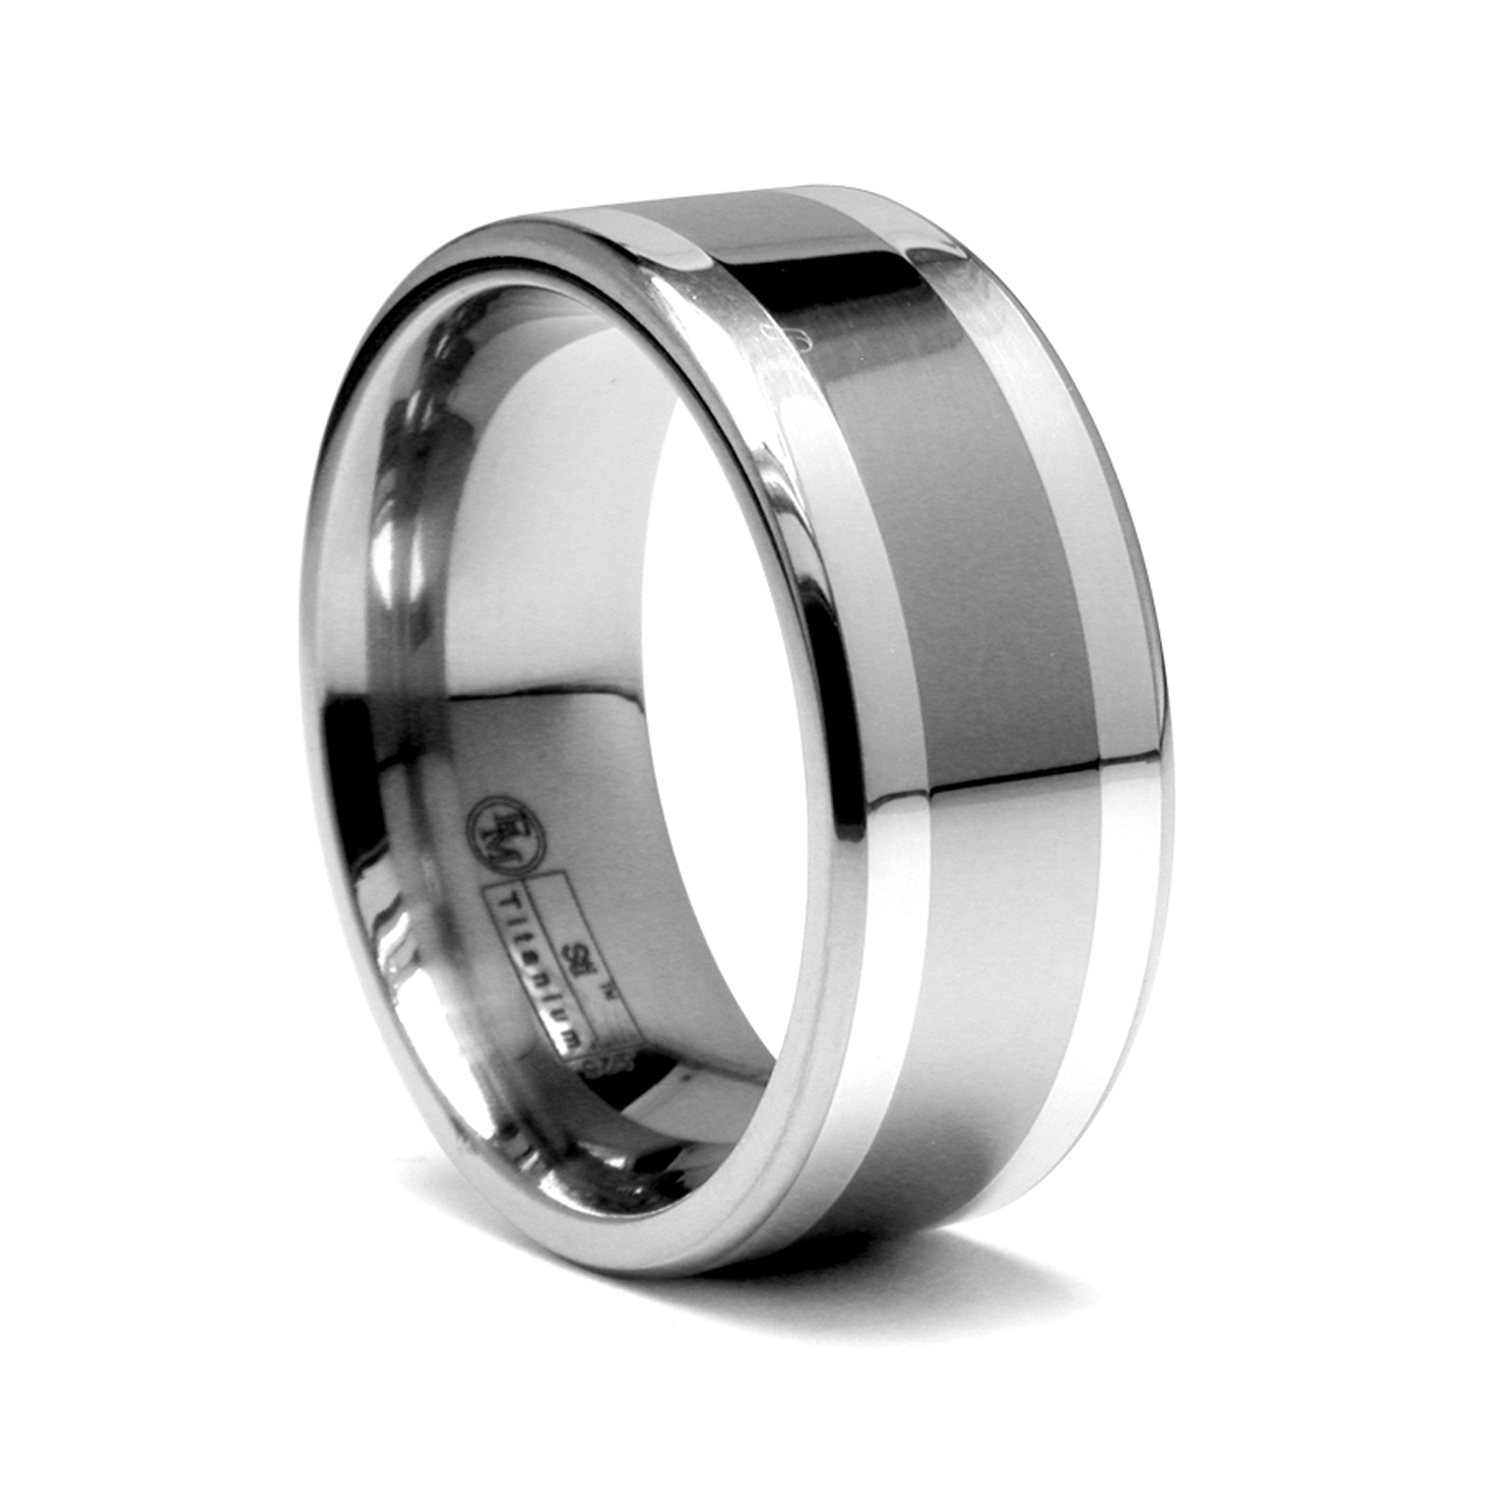 burl wedding mens bands band at titanium mm tayloright tungsten wood tunsten in carbide mesquite mwb exotic rings